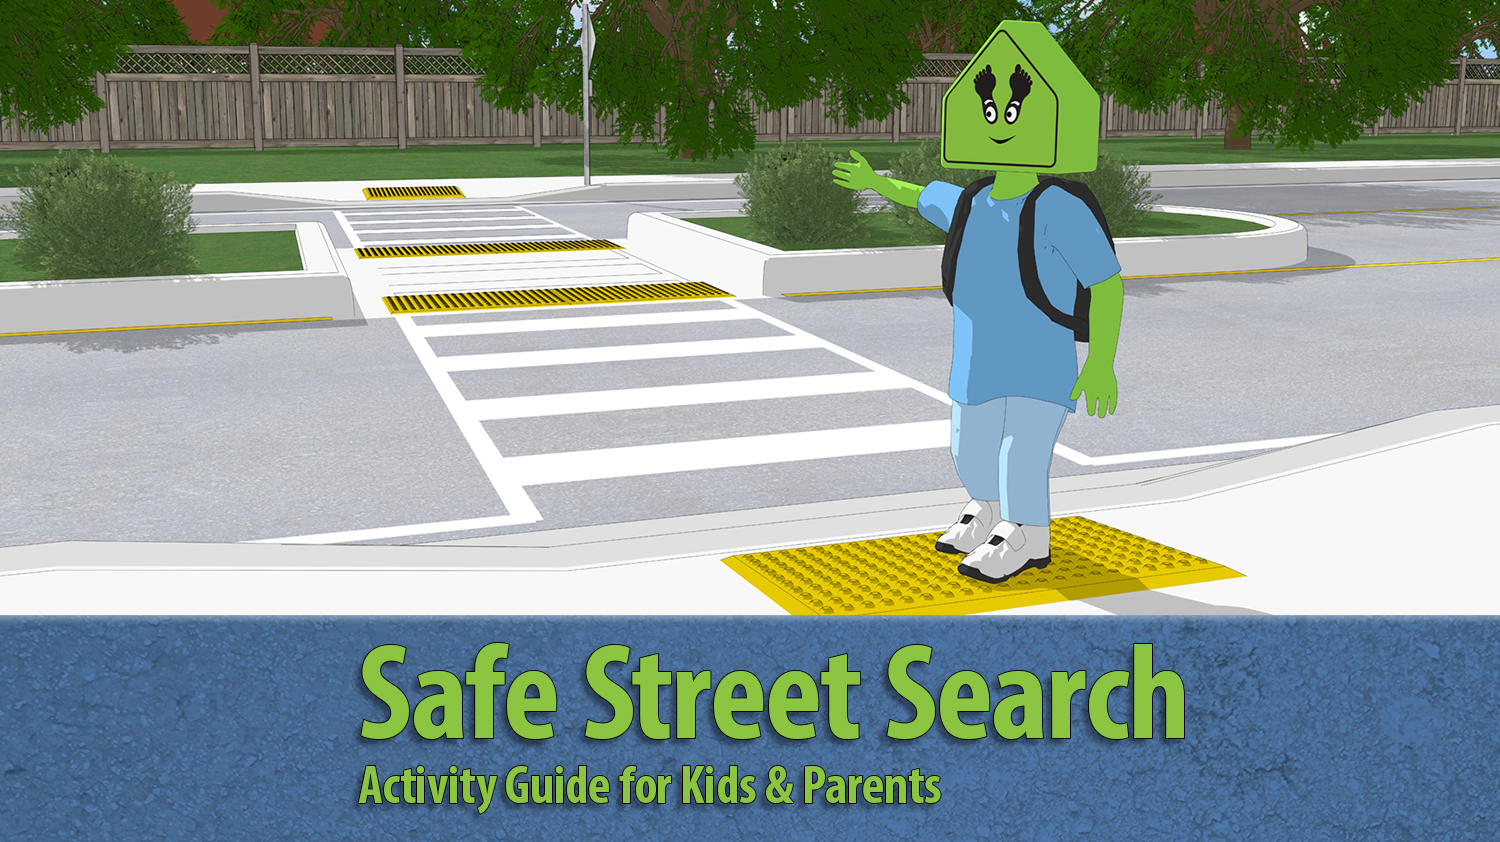 A picture of the cover of the Safe Street Search activity booklet